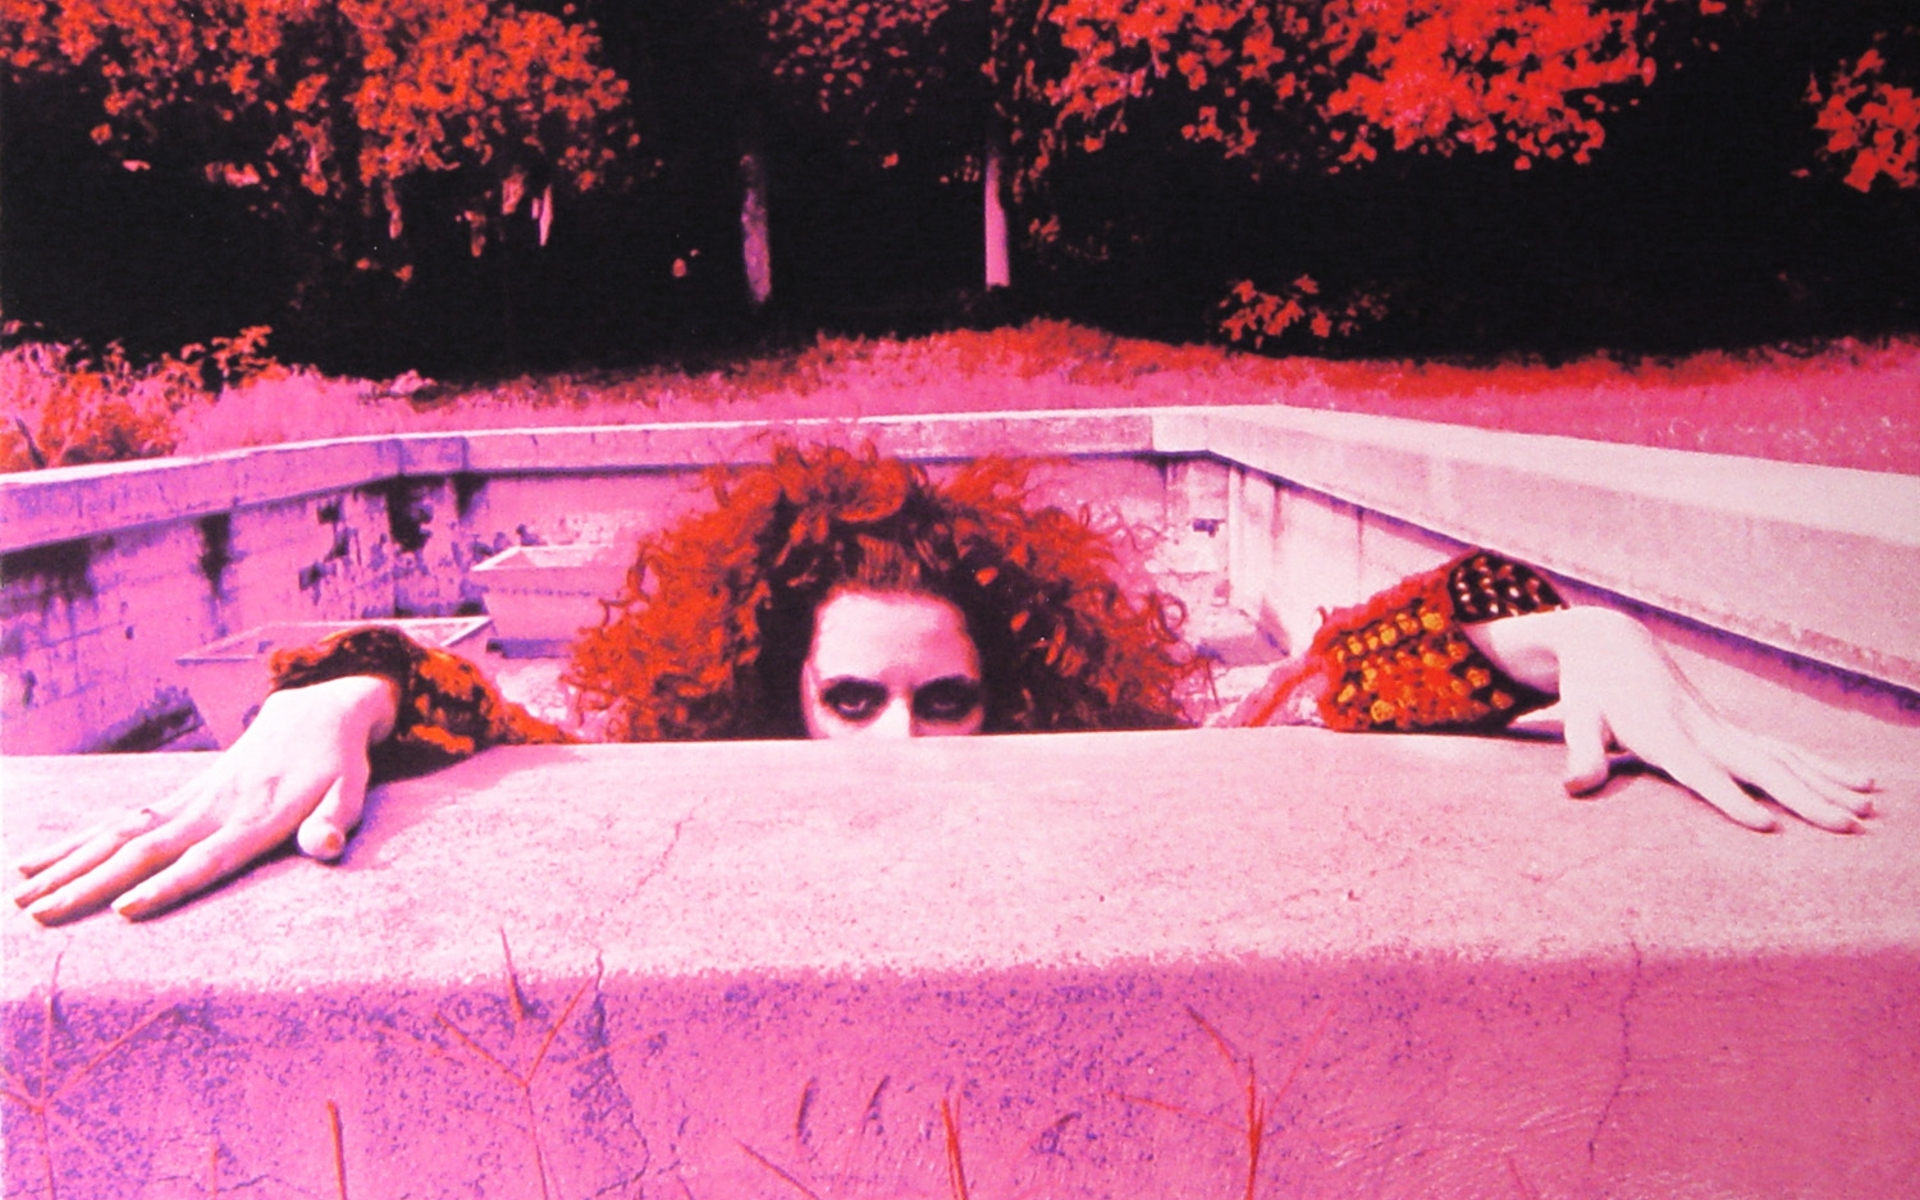 Frank Zappa swimming pools HD Wallpaper